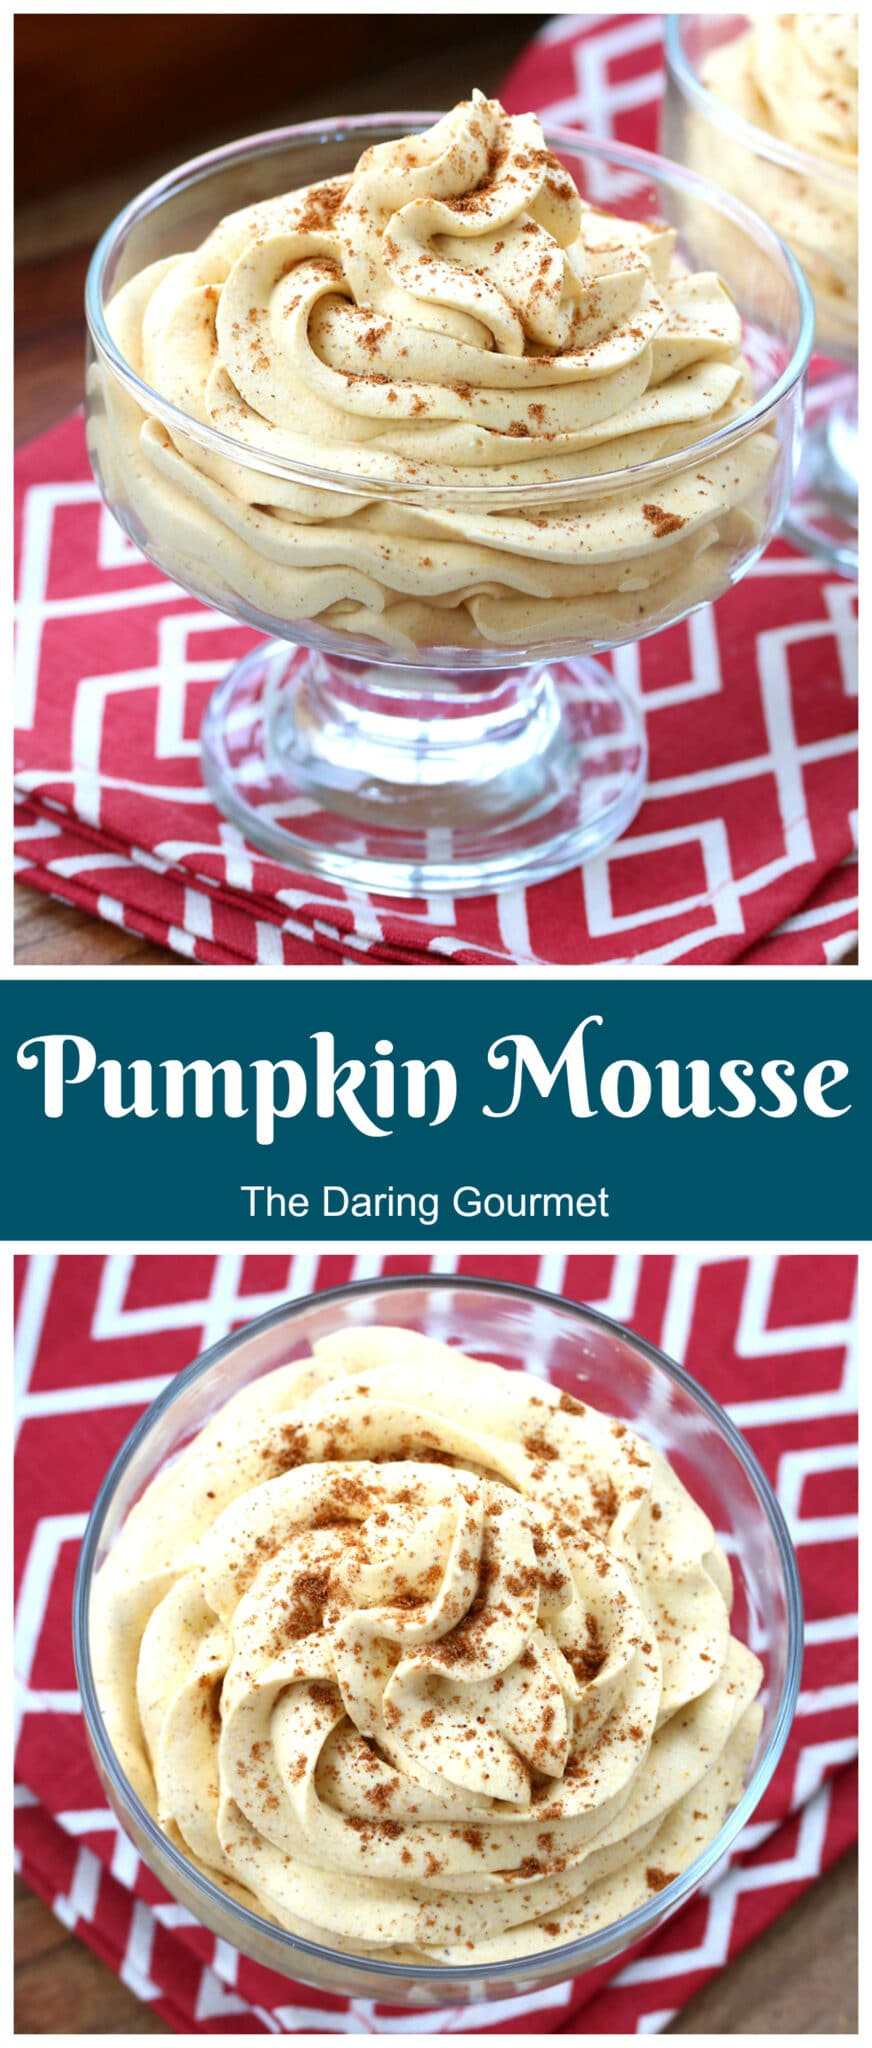 pumpkin mousse recipe cheesecake from scratch cream cheese